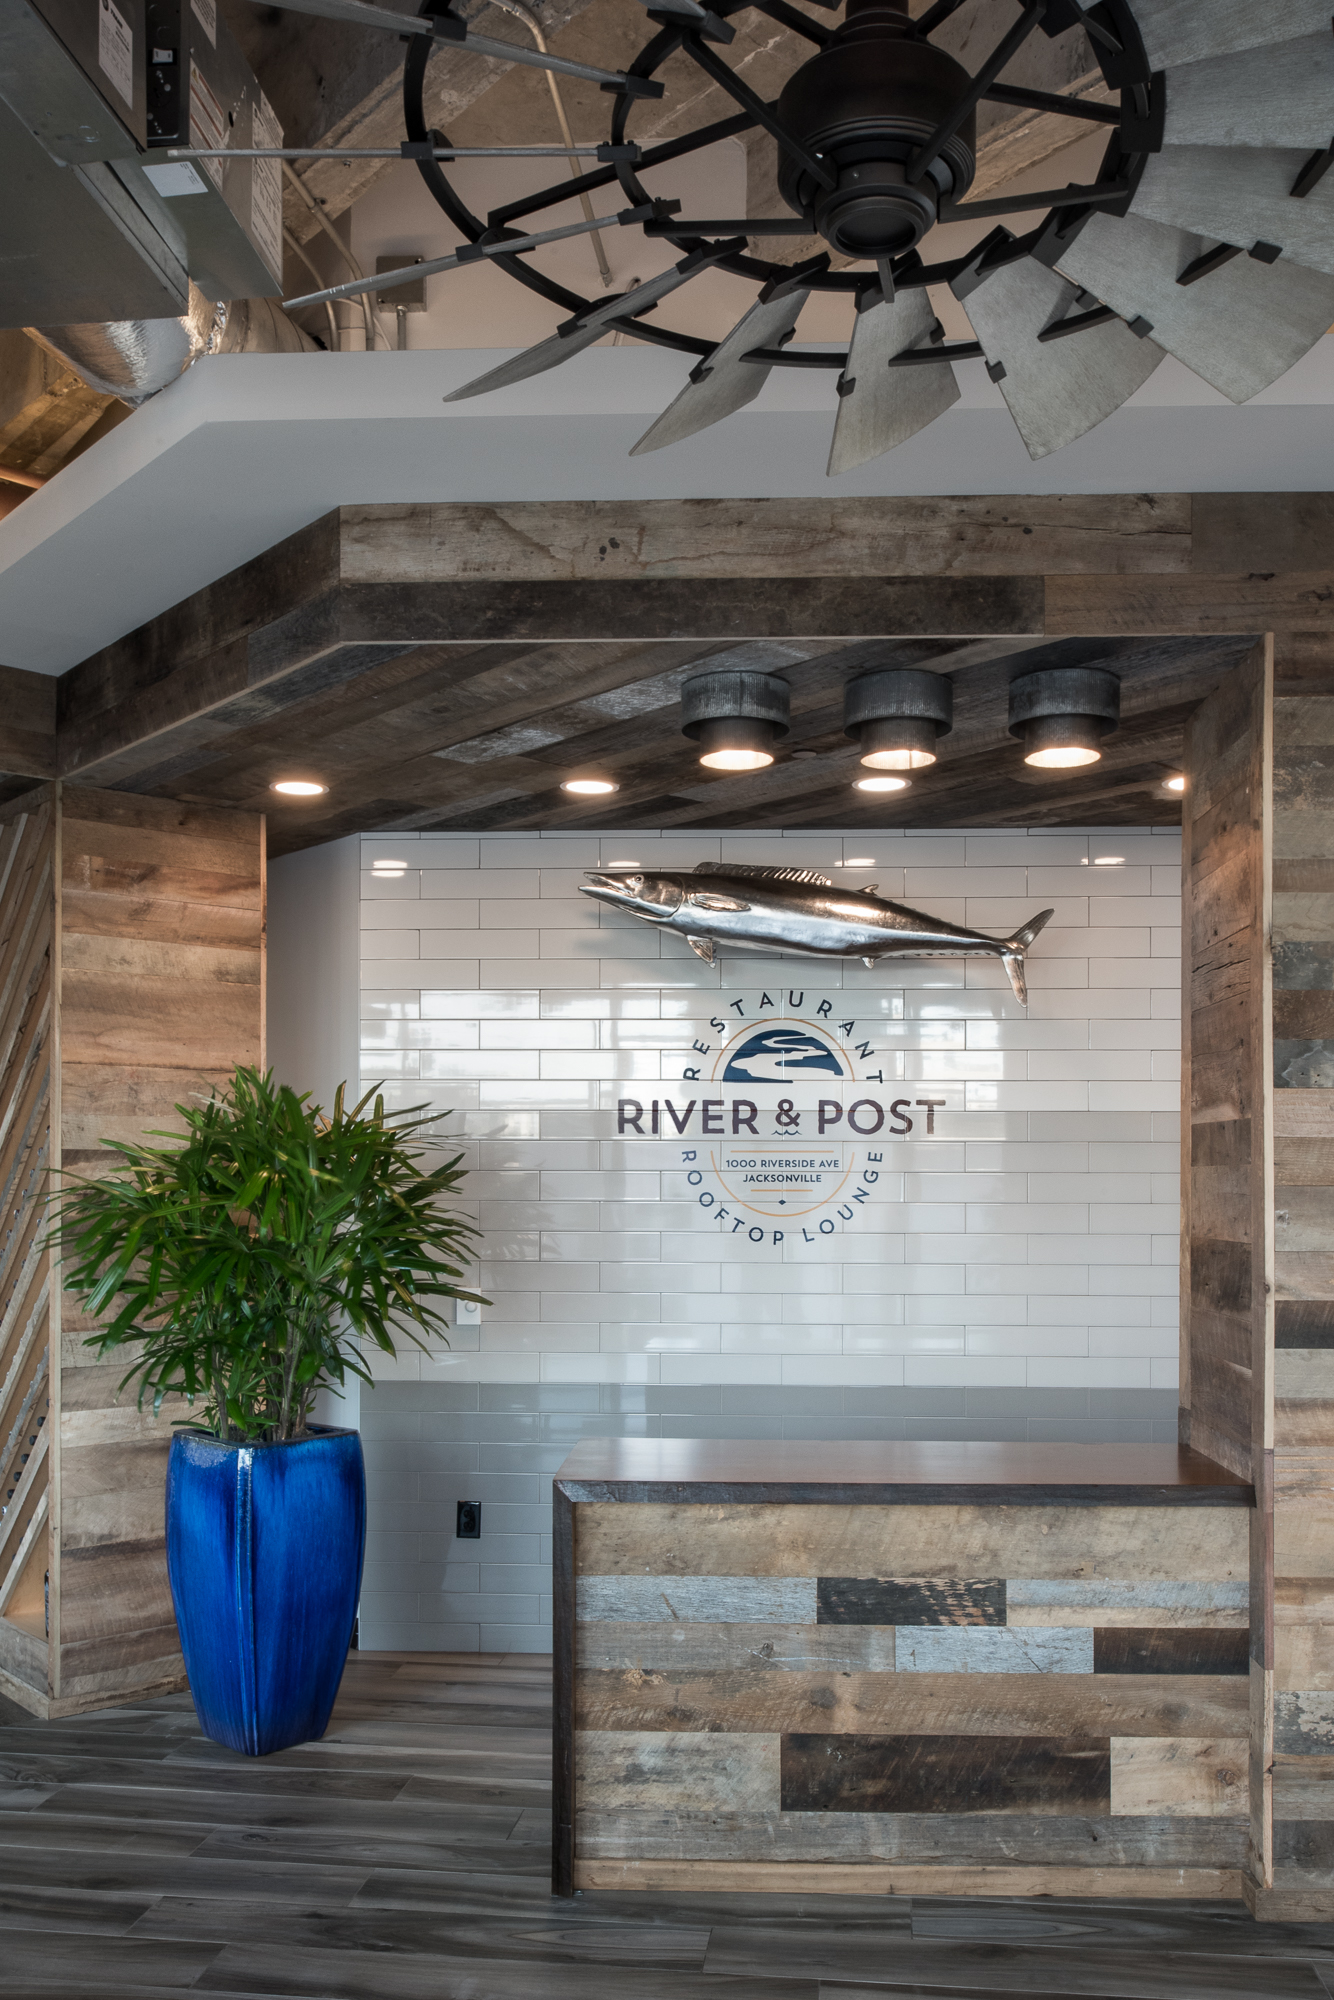 Micamy Design Studio_Interior Design_River and Post_Restaurant_Rooftop_Bar_Industrial_Rustic_Coastal_Riverside_Reclaimed Wood_Blog Style_Styling Accessories_Entry_Cocktails.jpg